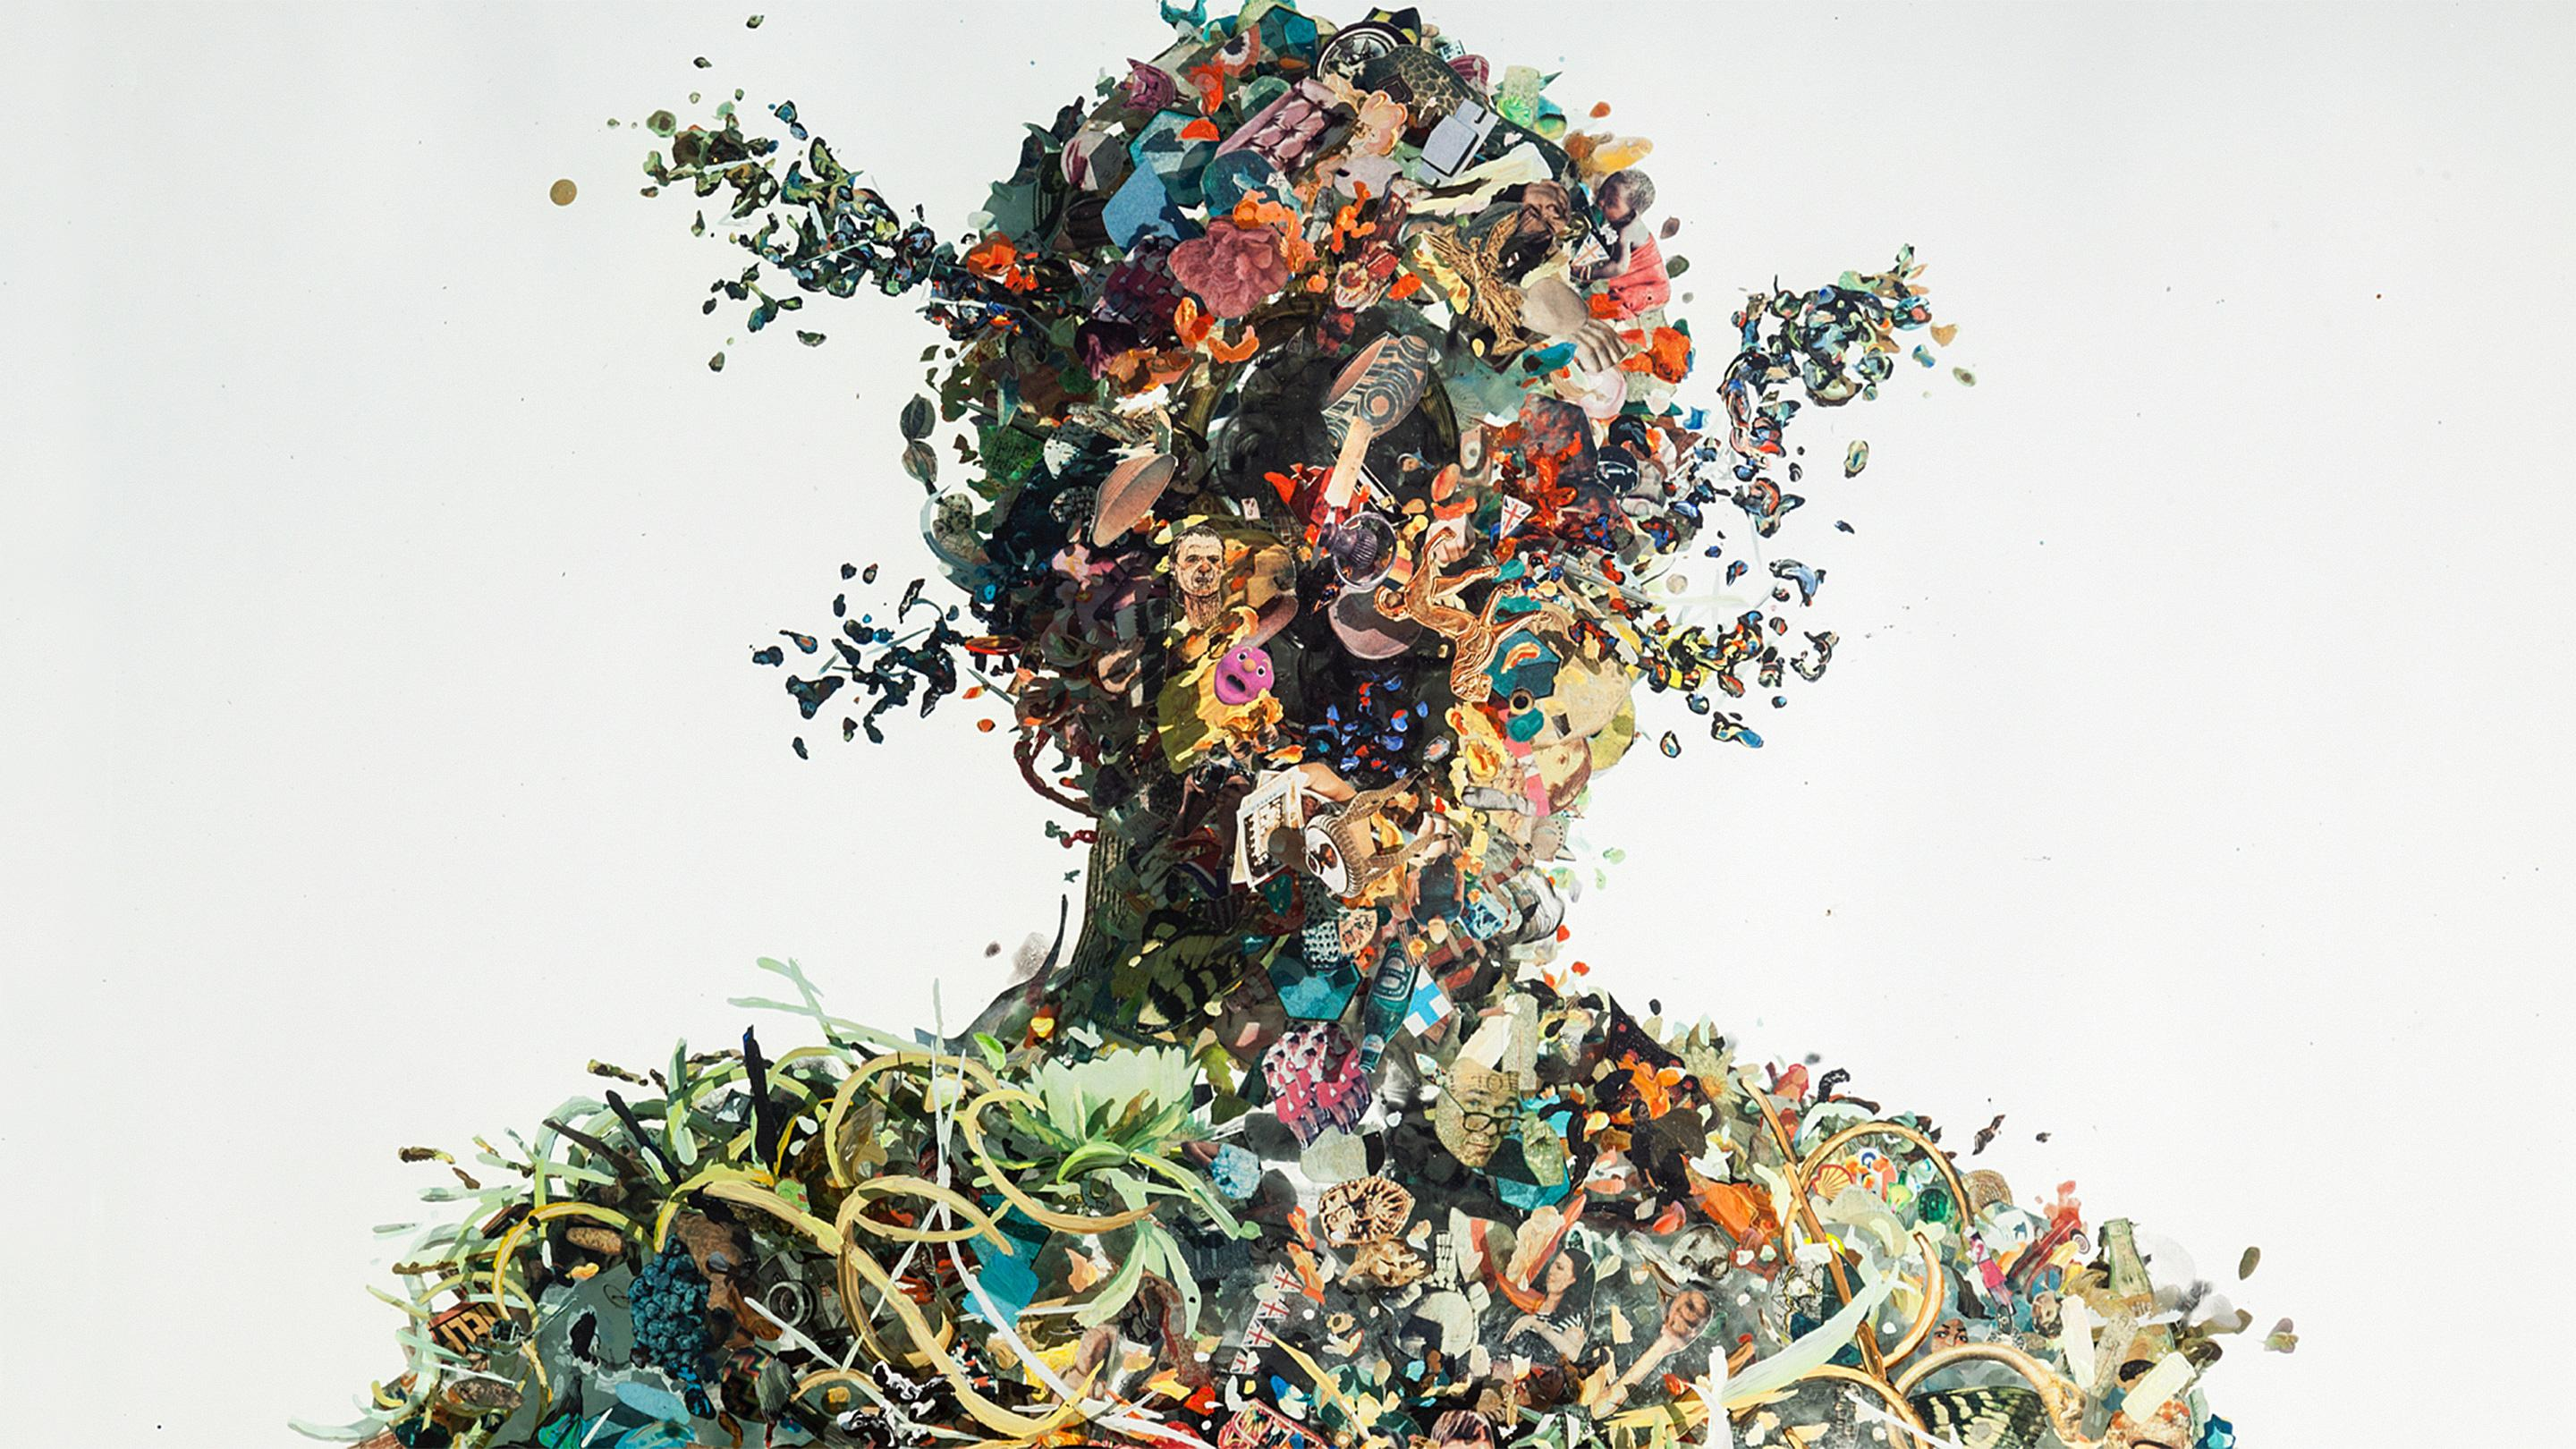 Psychogeographies, i collages tridimensionali di Dustin Yellin | Collater.al